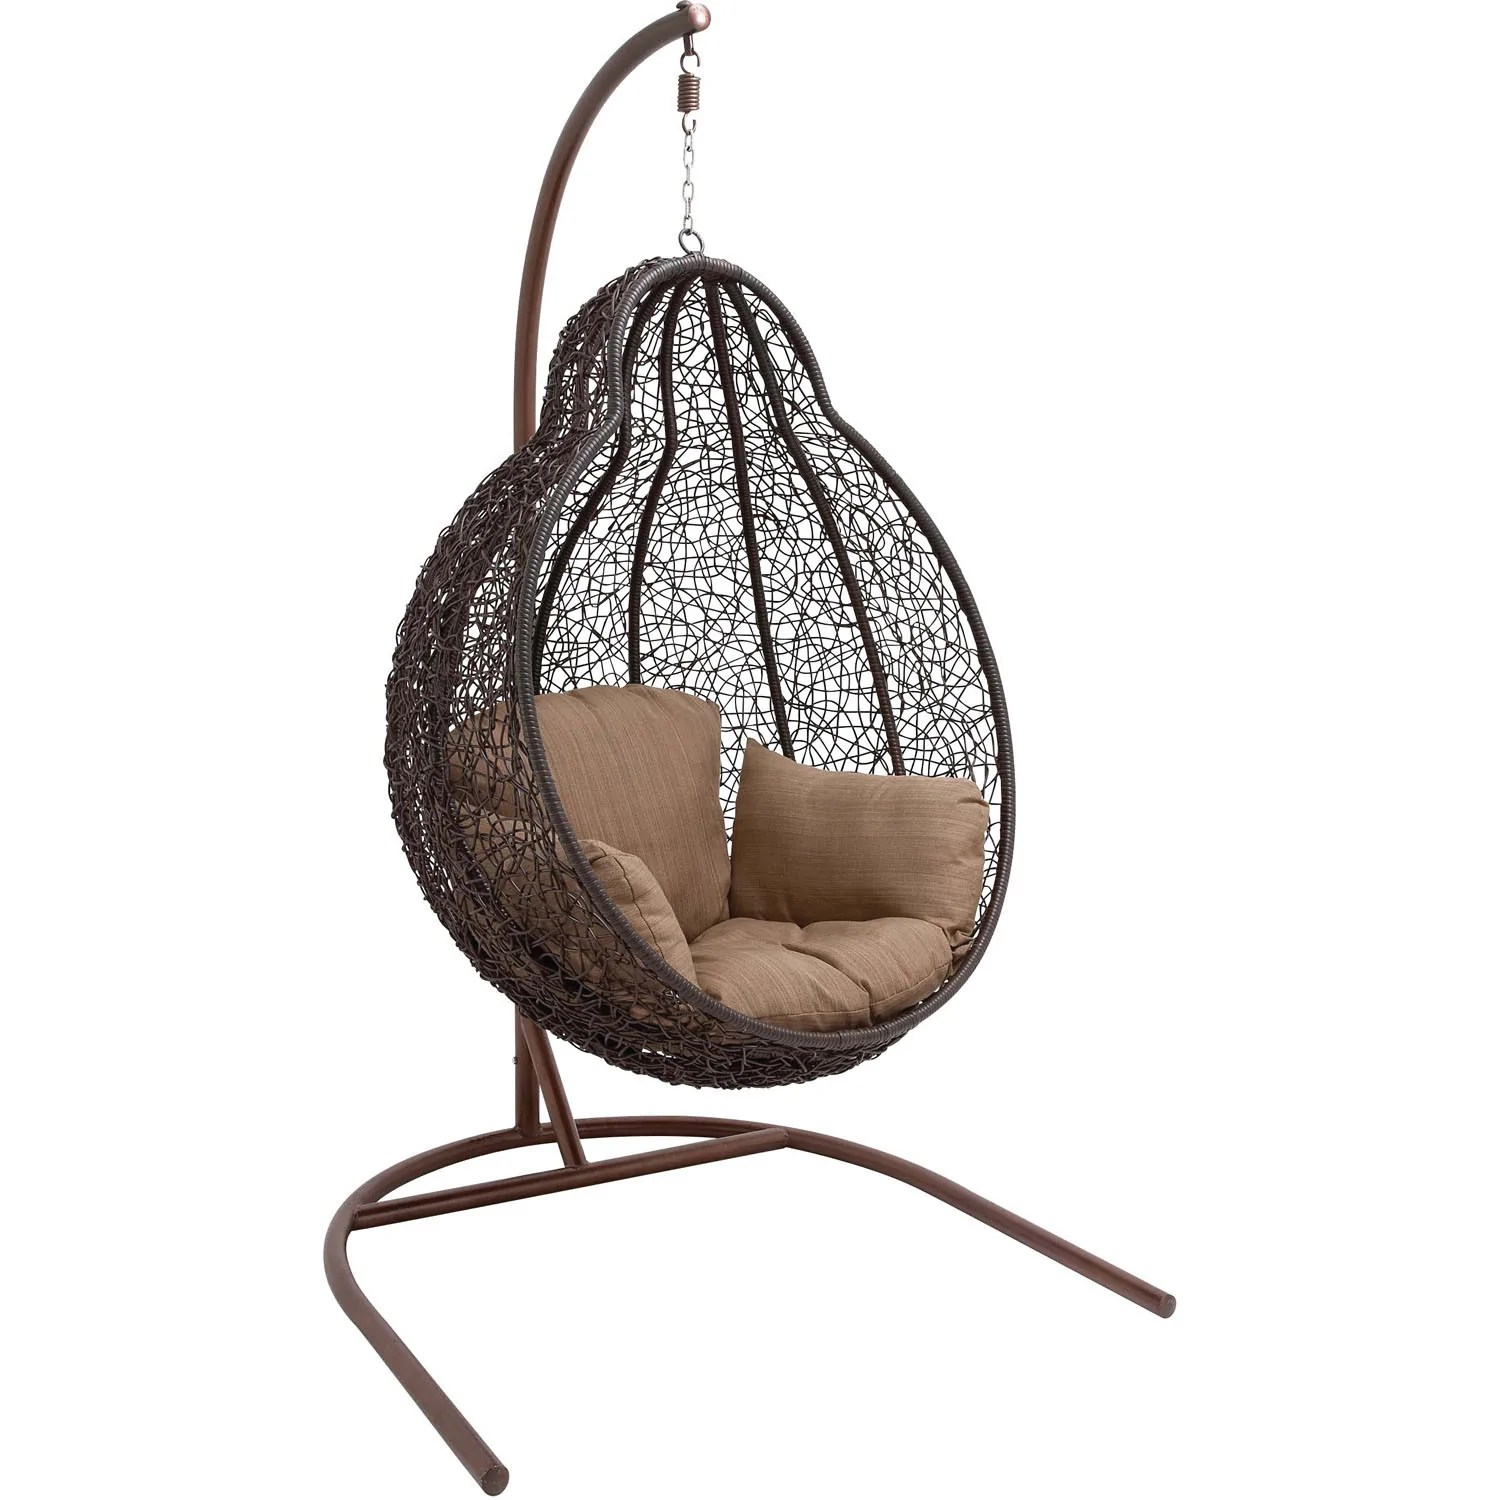 Hanging Egg Chair Outdoor Hanover Outdoor Wicker Rattan Hanging Egg Chair Swing Egg Swing04